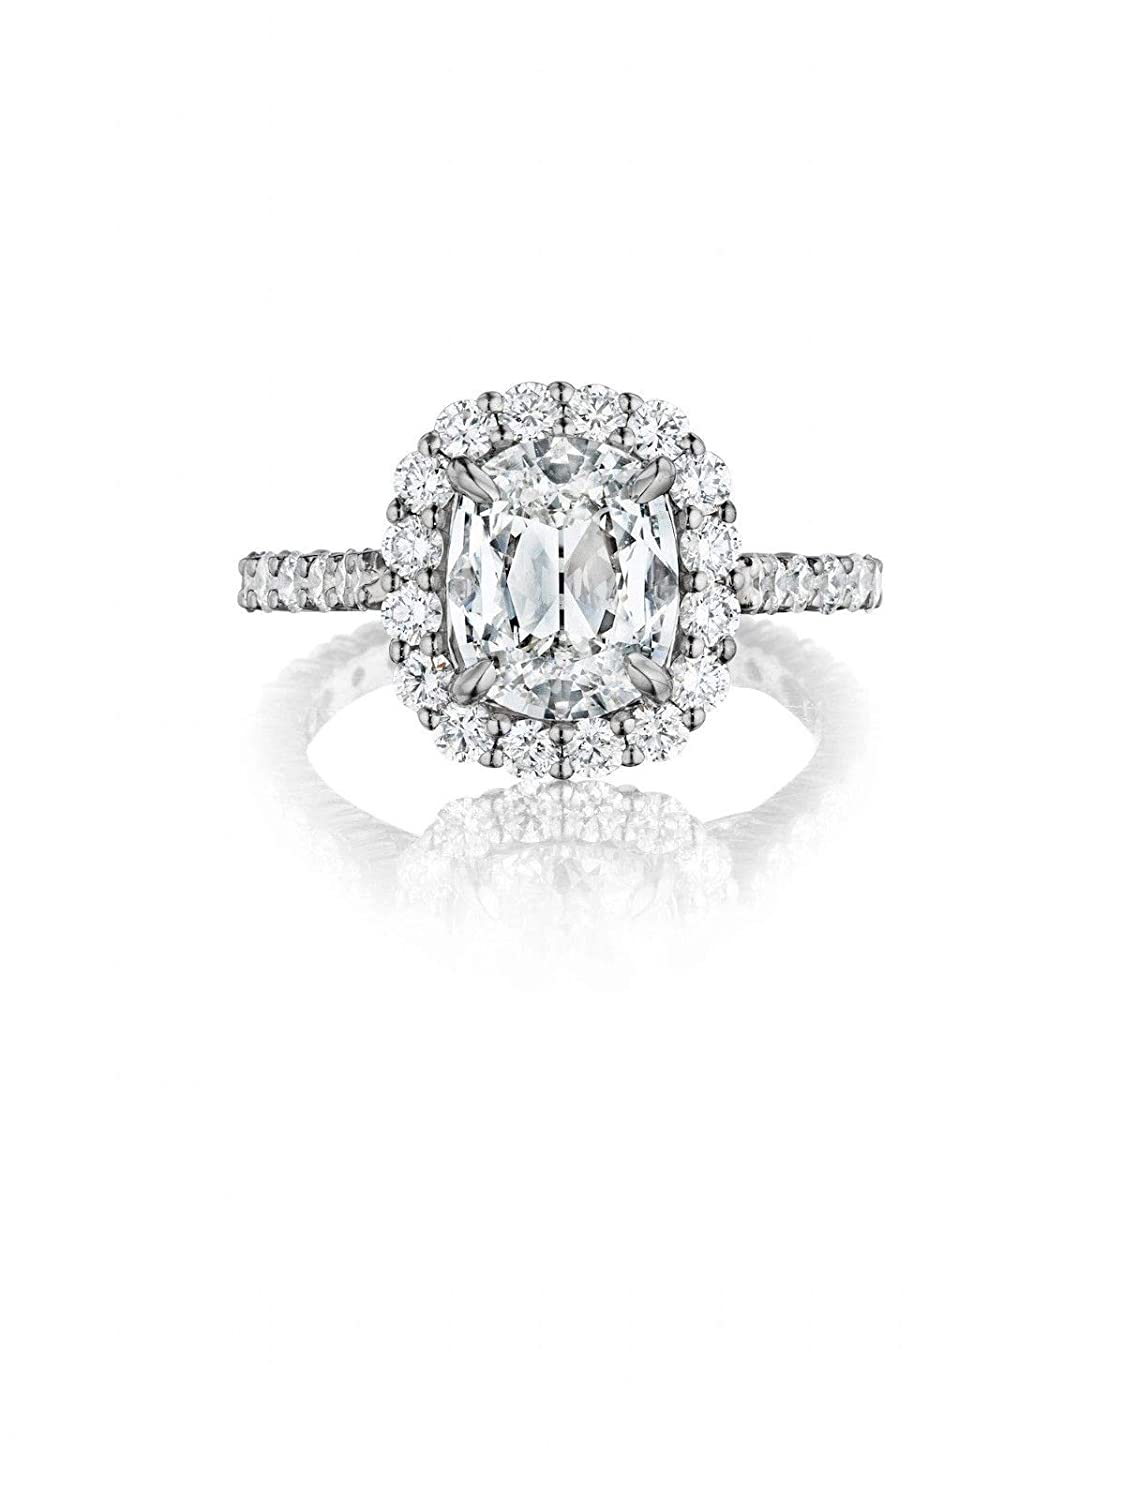 Henri Daussi Cushion Gia2 45ct Diamond Engagement Ring Retail Price